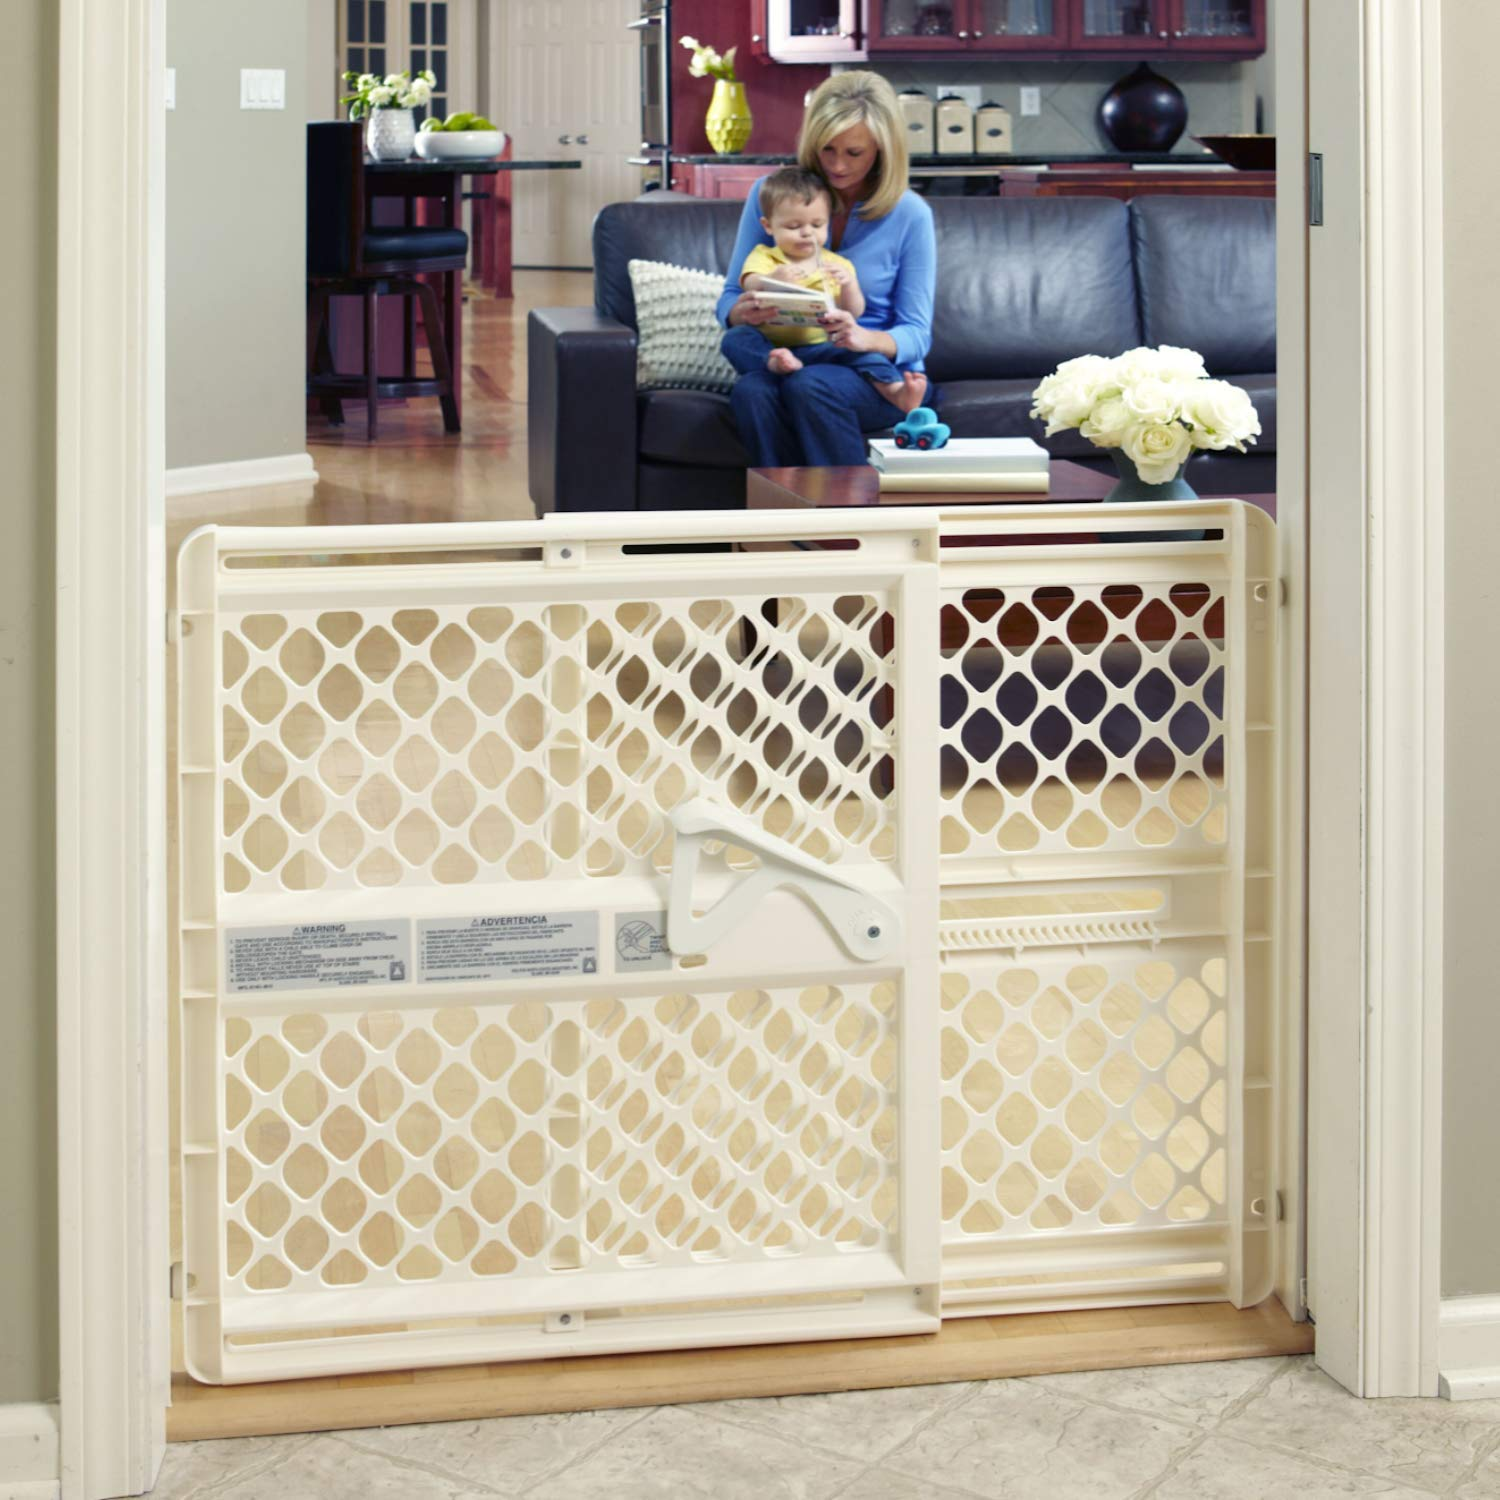 Toddleroo By North States 42 Wide Supergate Ergo Baby Gate Great For Doorways Or Stairways Includes Wall Cups For Extra Holding Power Pressure Or Hardware Mount 26 42 Wide